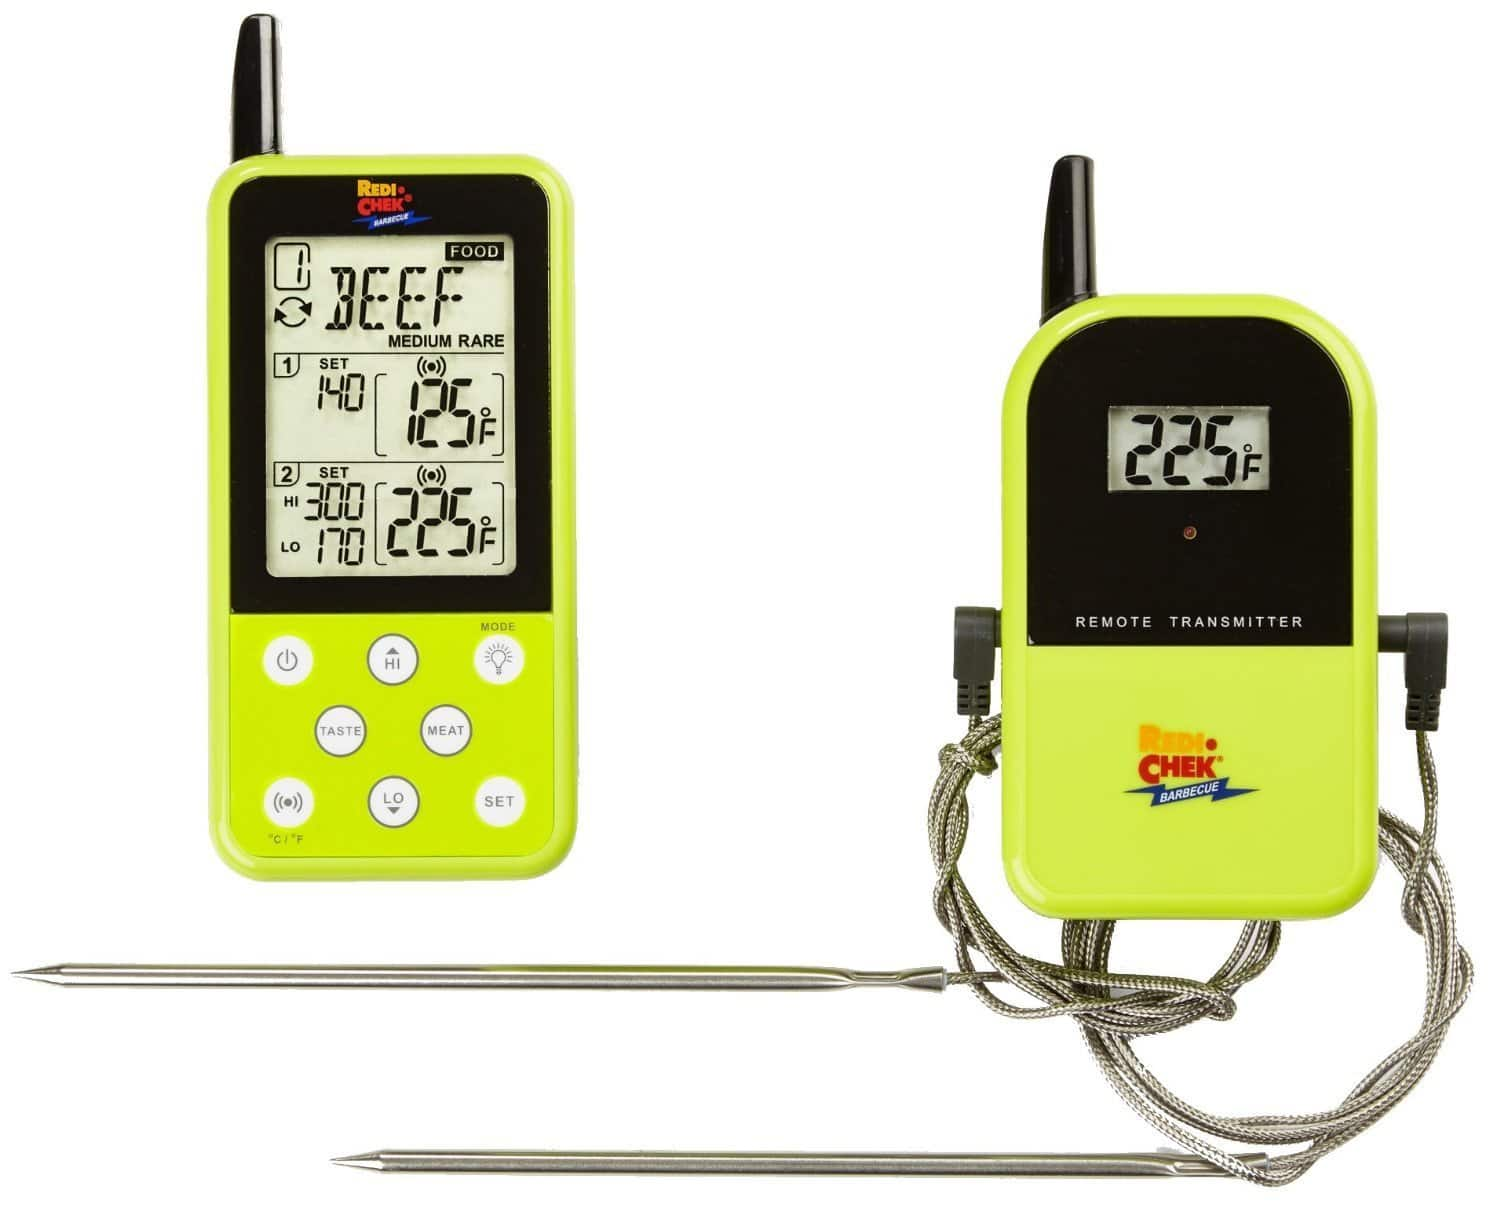 Maverick Industries Long Range Wireless Dual Probe Barbecue Smoker Meat Thermometer Set - Green Version with a Larger Display $34.99 ac / fs @ amazon